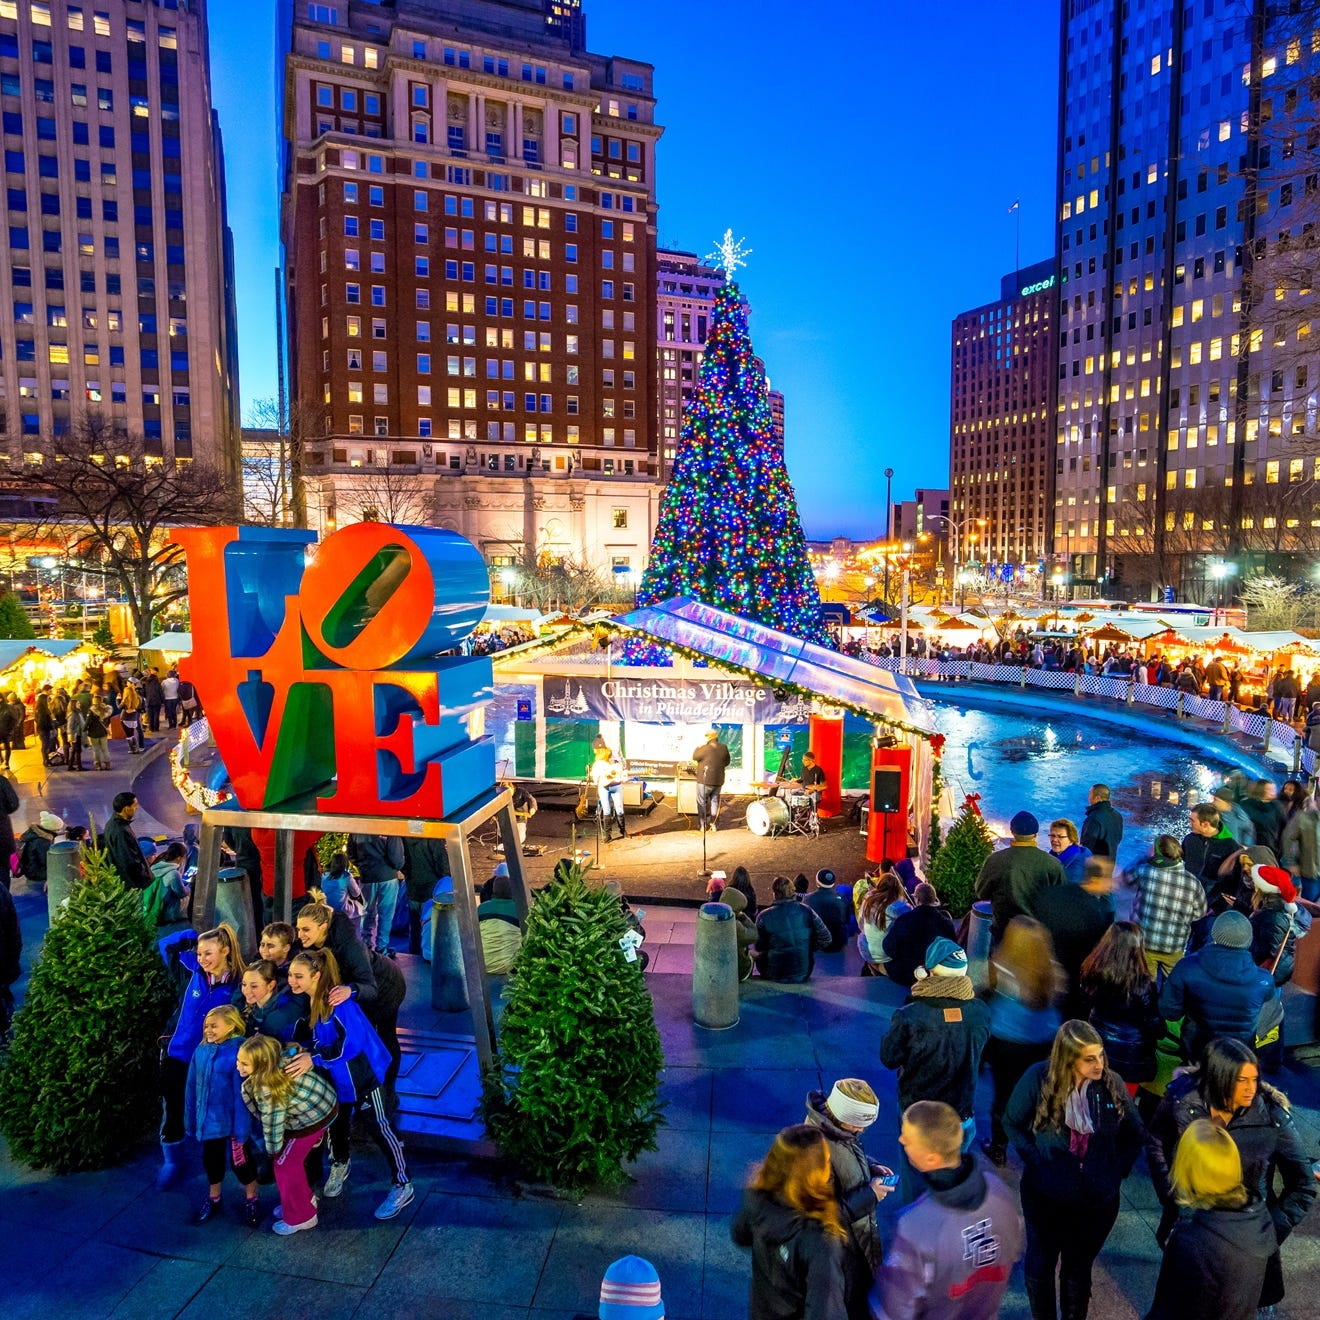 Philadelphia's popular Christmas Village includes a heated garden serving mulled wine, daily concerts and a German grill serving favorites like bratwursts, Belgian fries and strudel.  The Philadelphia area was ranked sixth for activities and weather